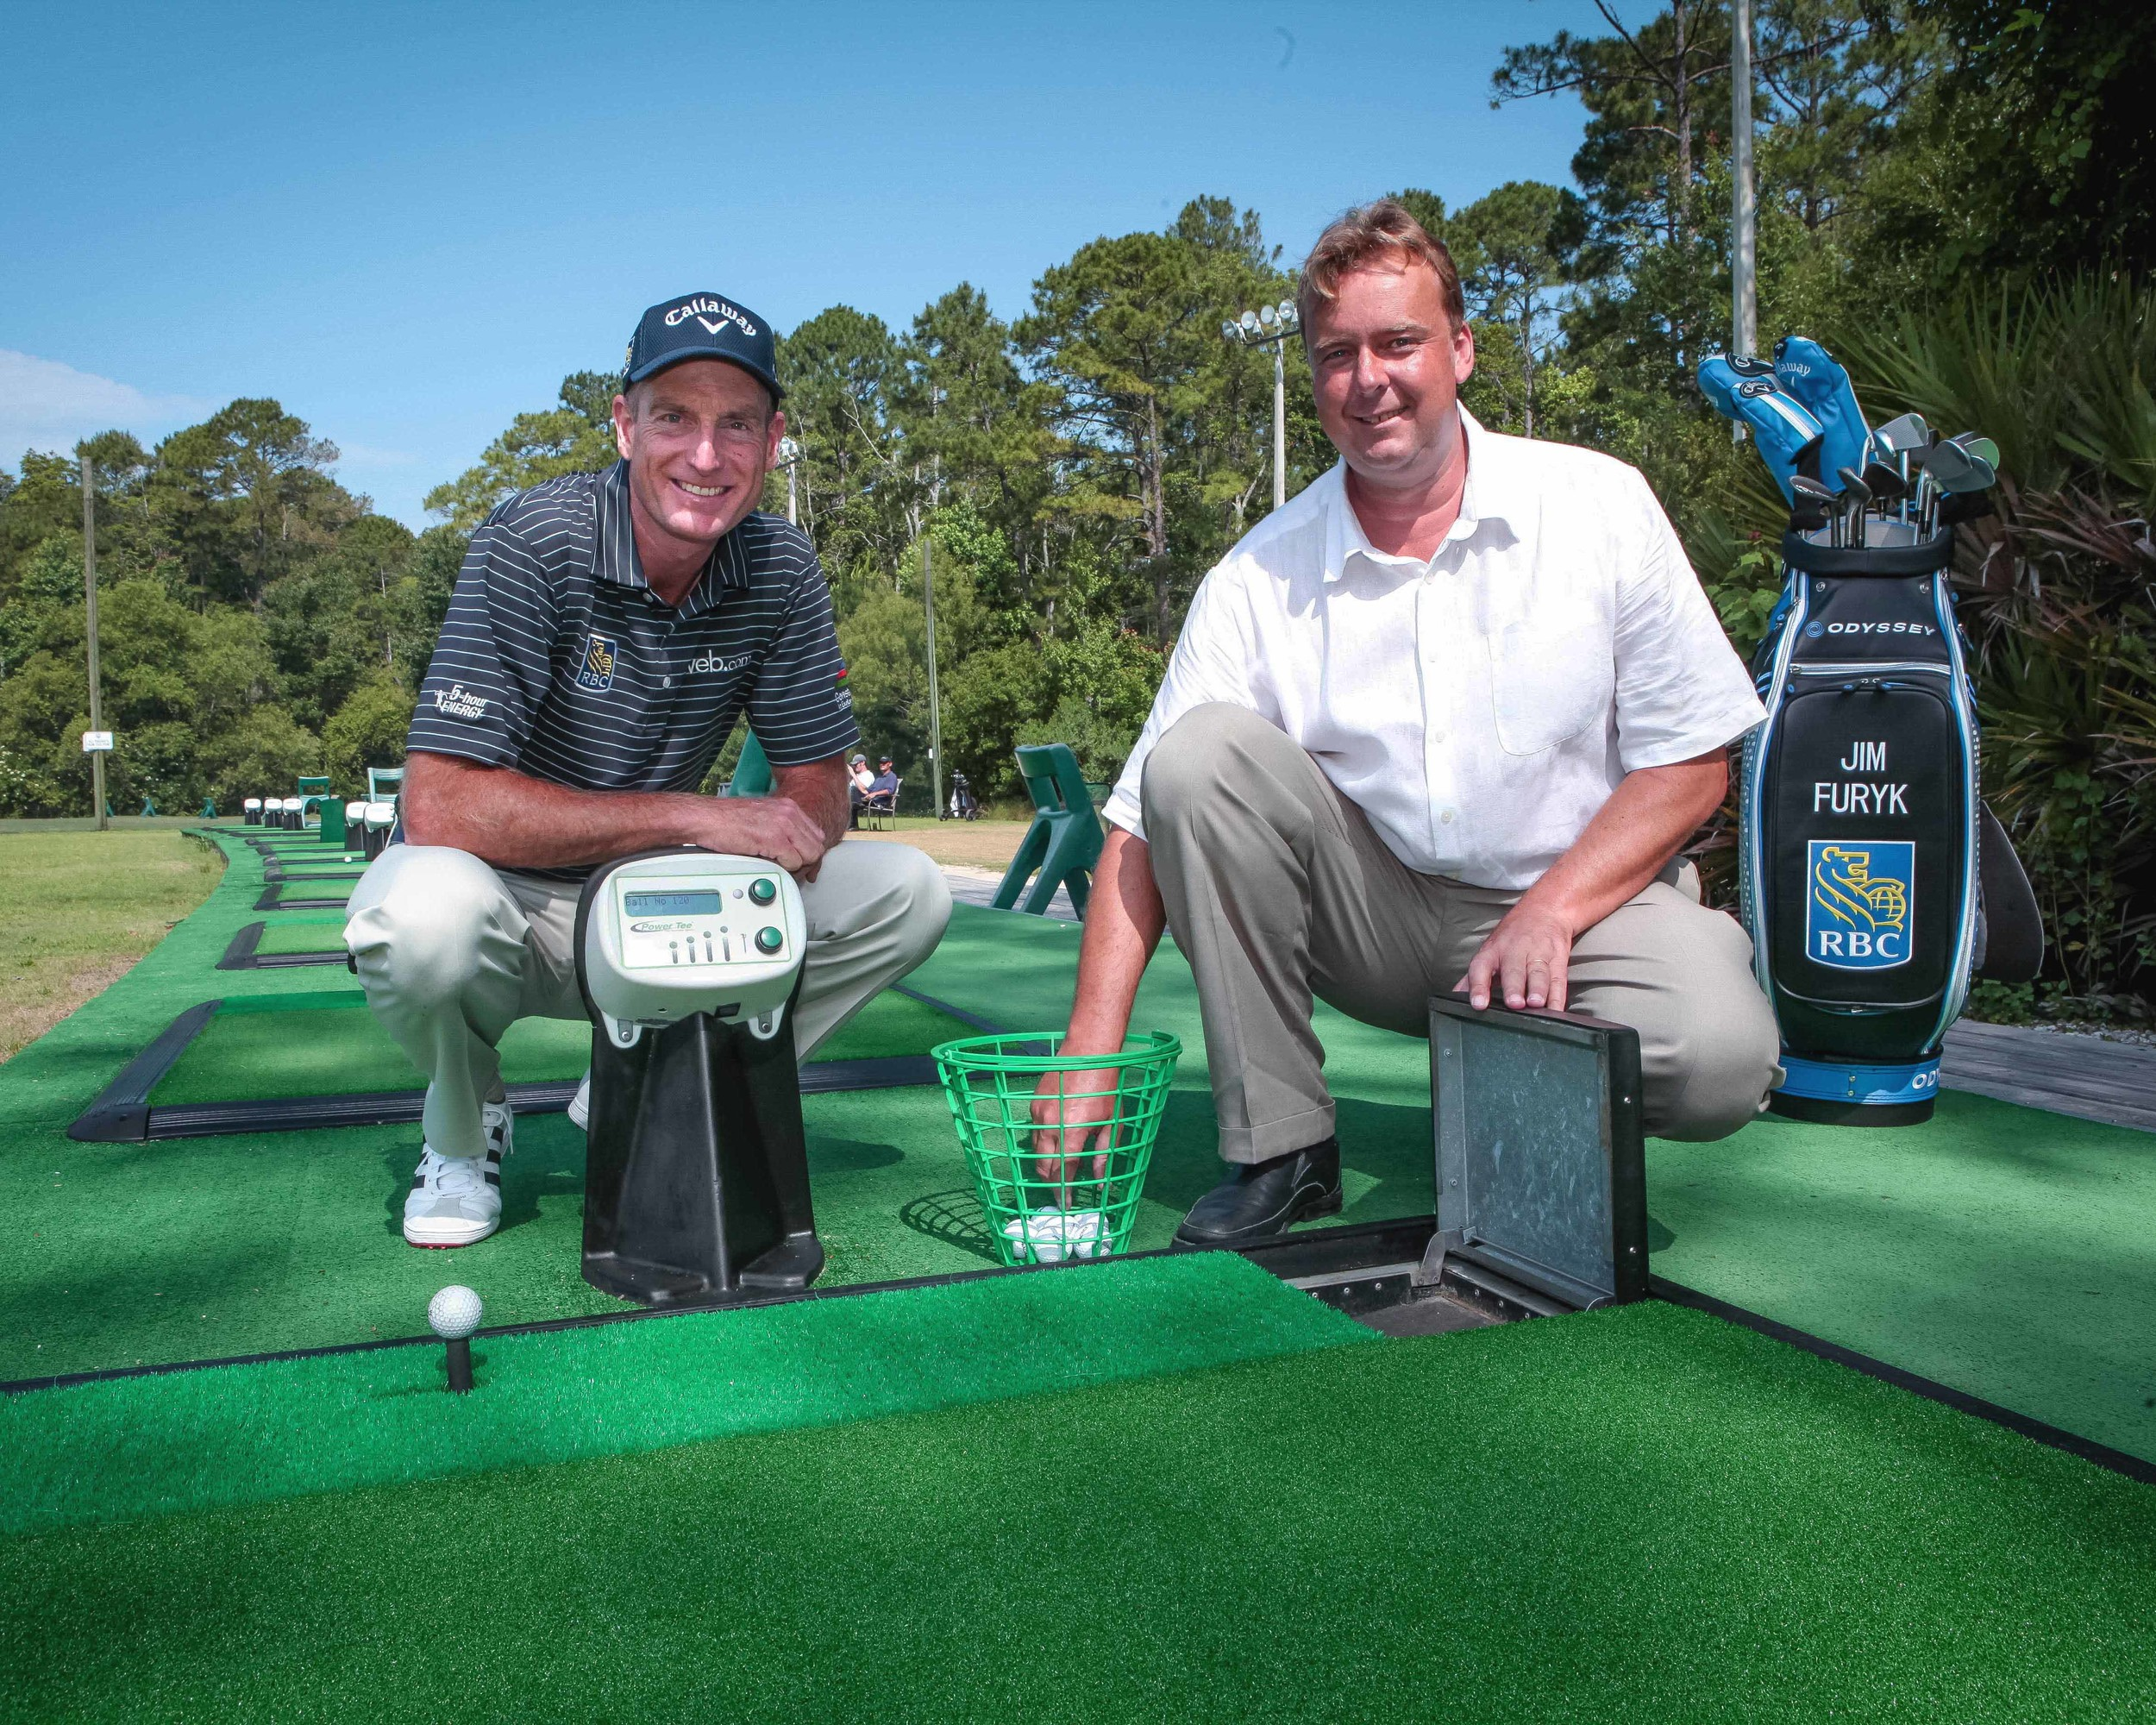 Jim Furyk kneels next to a Power Tee with Martin Wyeth at the Hayt Golf Learning Center at University of North Florida.